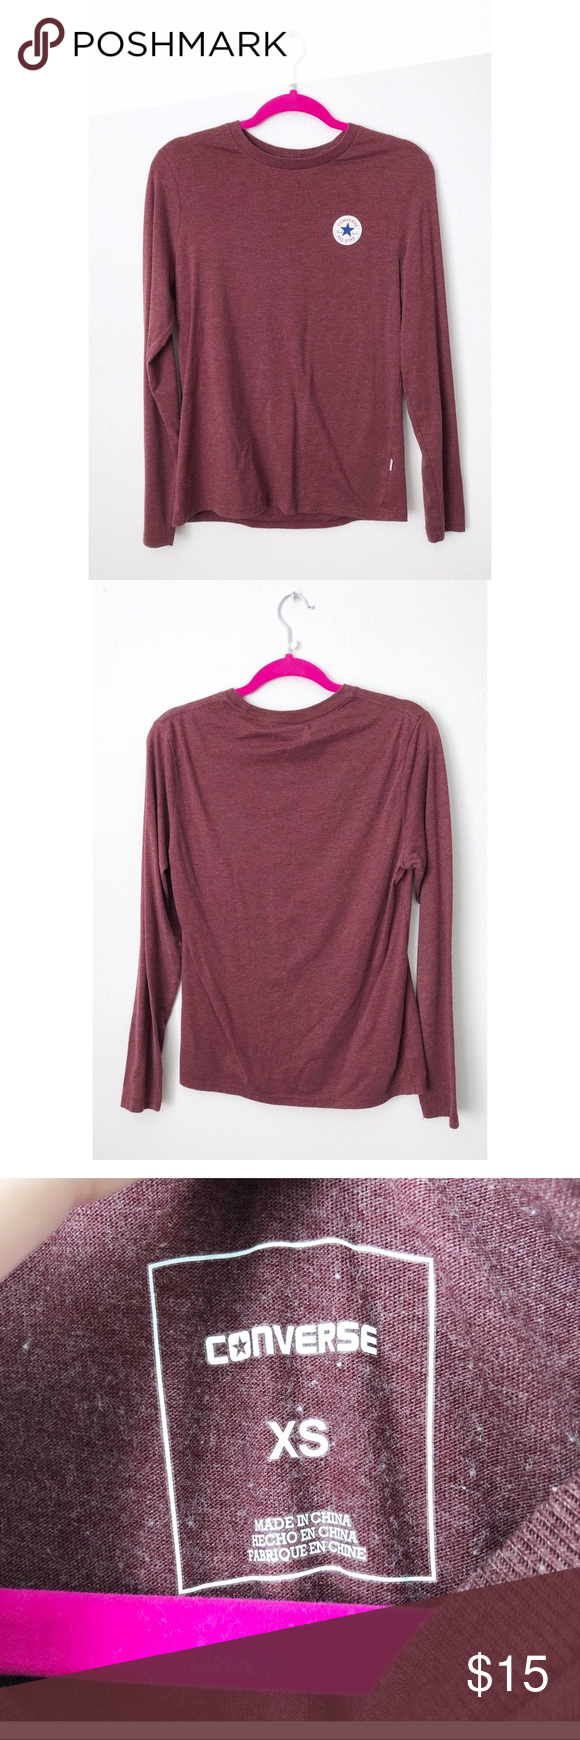 de9cb535d72b Maroon converse long sleeve A maroon core patch converse long sleeve. It is  a men s xs but can also be worn by women if you prefer a slightly bigger  fit.